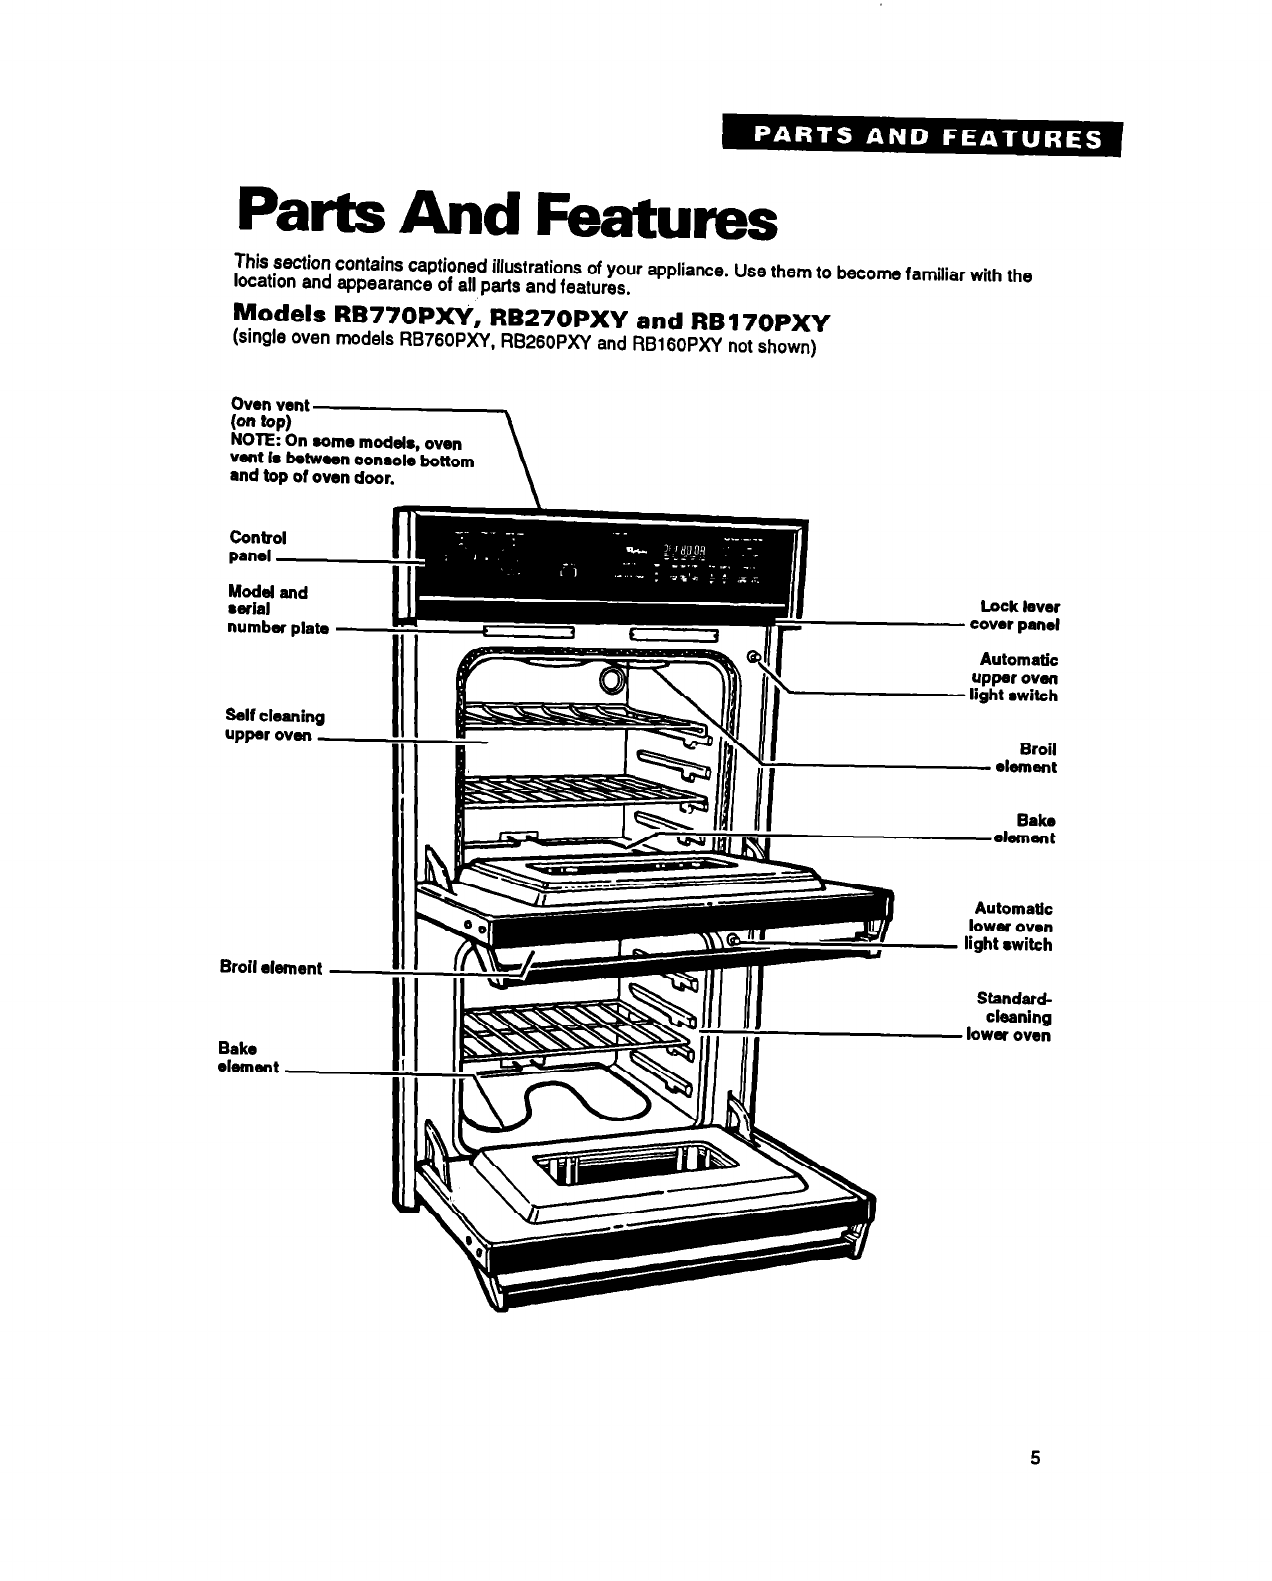 Page 5 of Whirlpool Oven RB270PXY User Guide